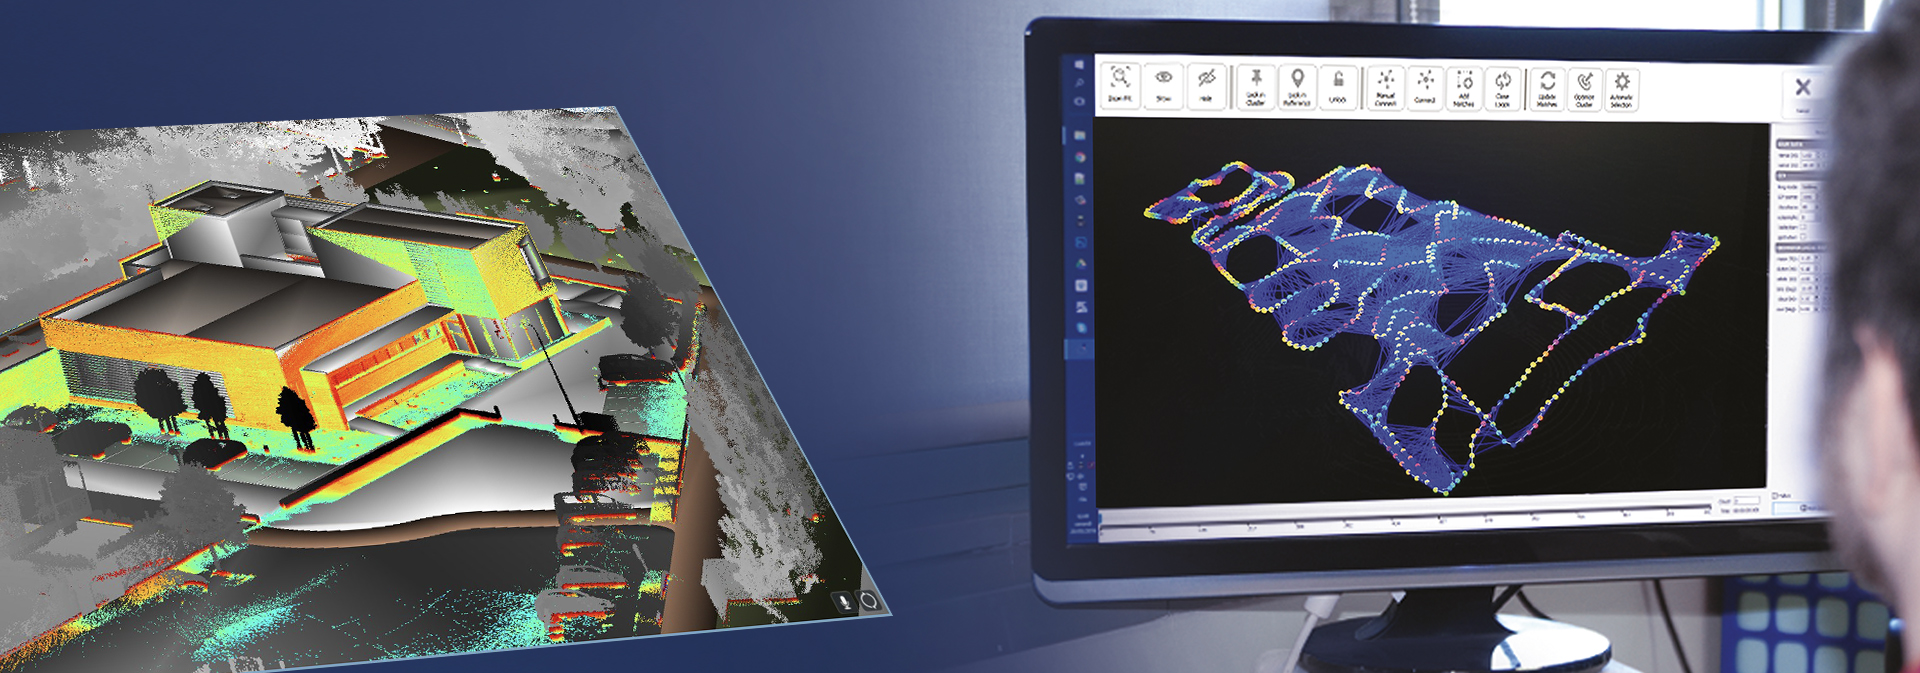 3d-scanning-software-JRC-3d-reconstructor-ductim-x